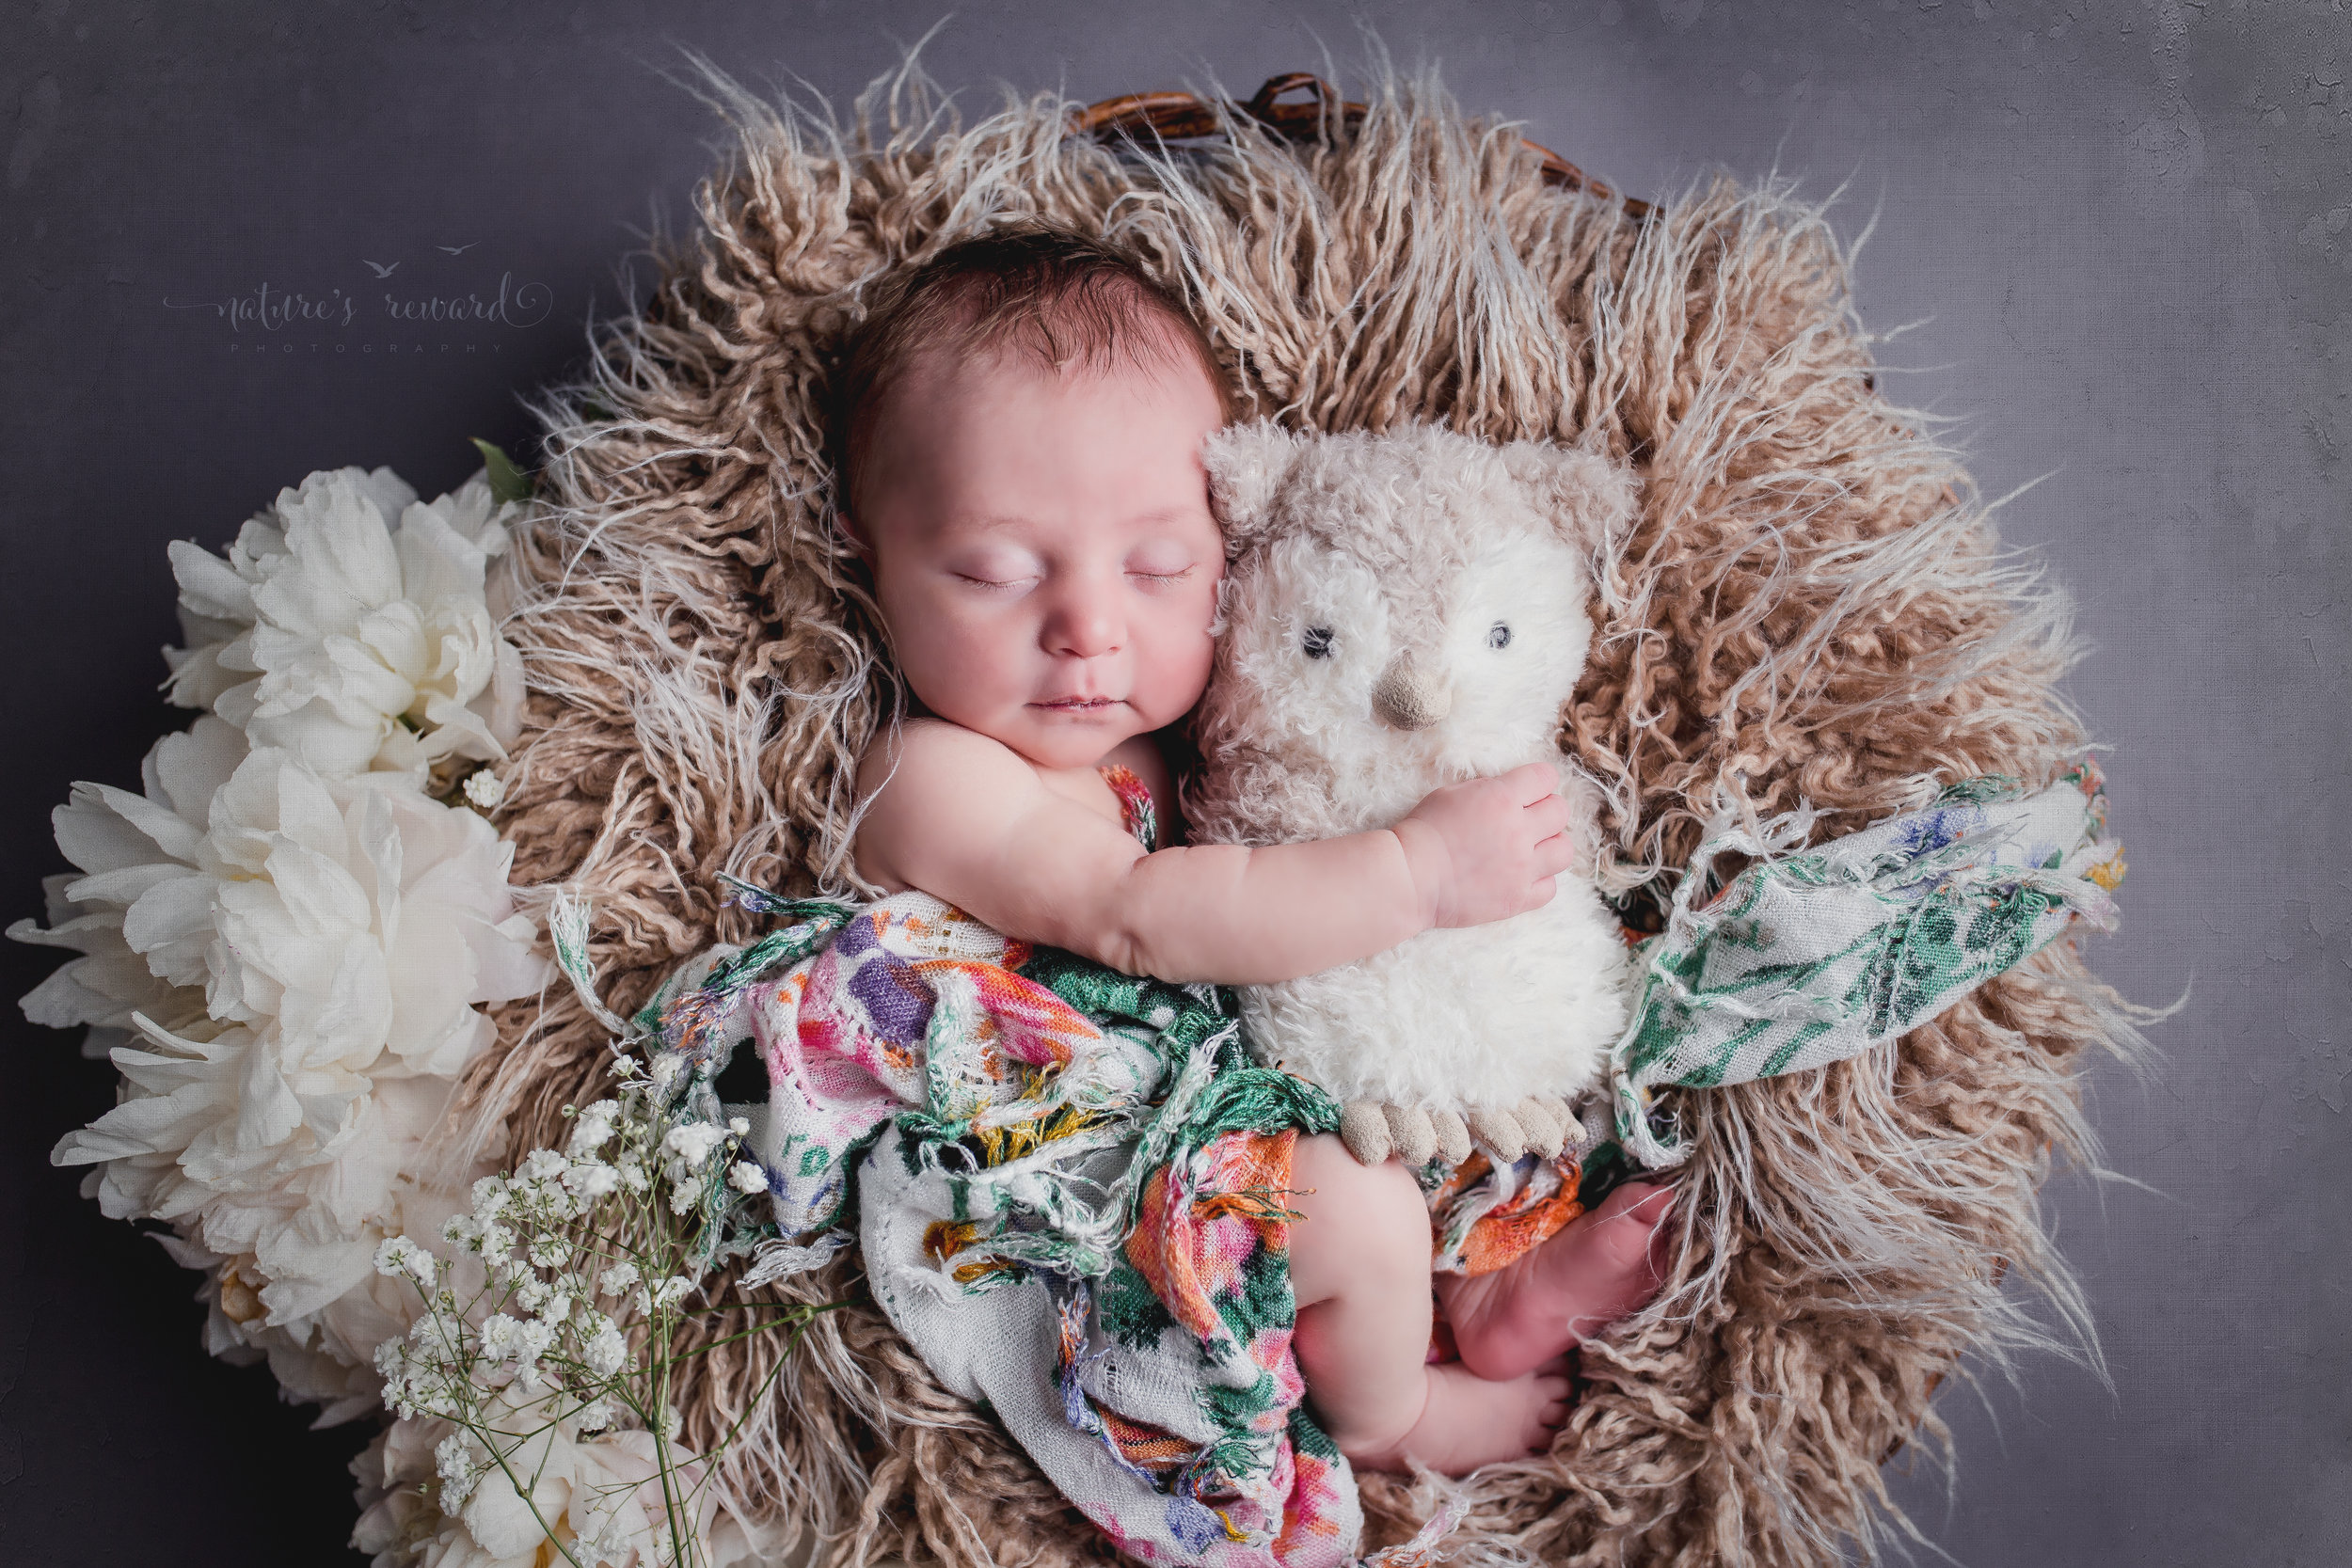 Newborn baby portrait in whites and soft teal, laying on a bed of fur draped in floral holding her owl.A Portrait By Nature's Reward Photography, a San Bernardino Family, Child, and Newborn Baby Photographer.